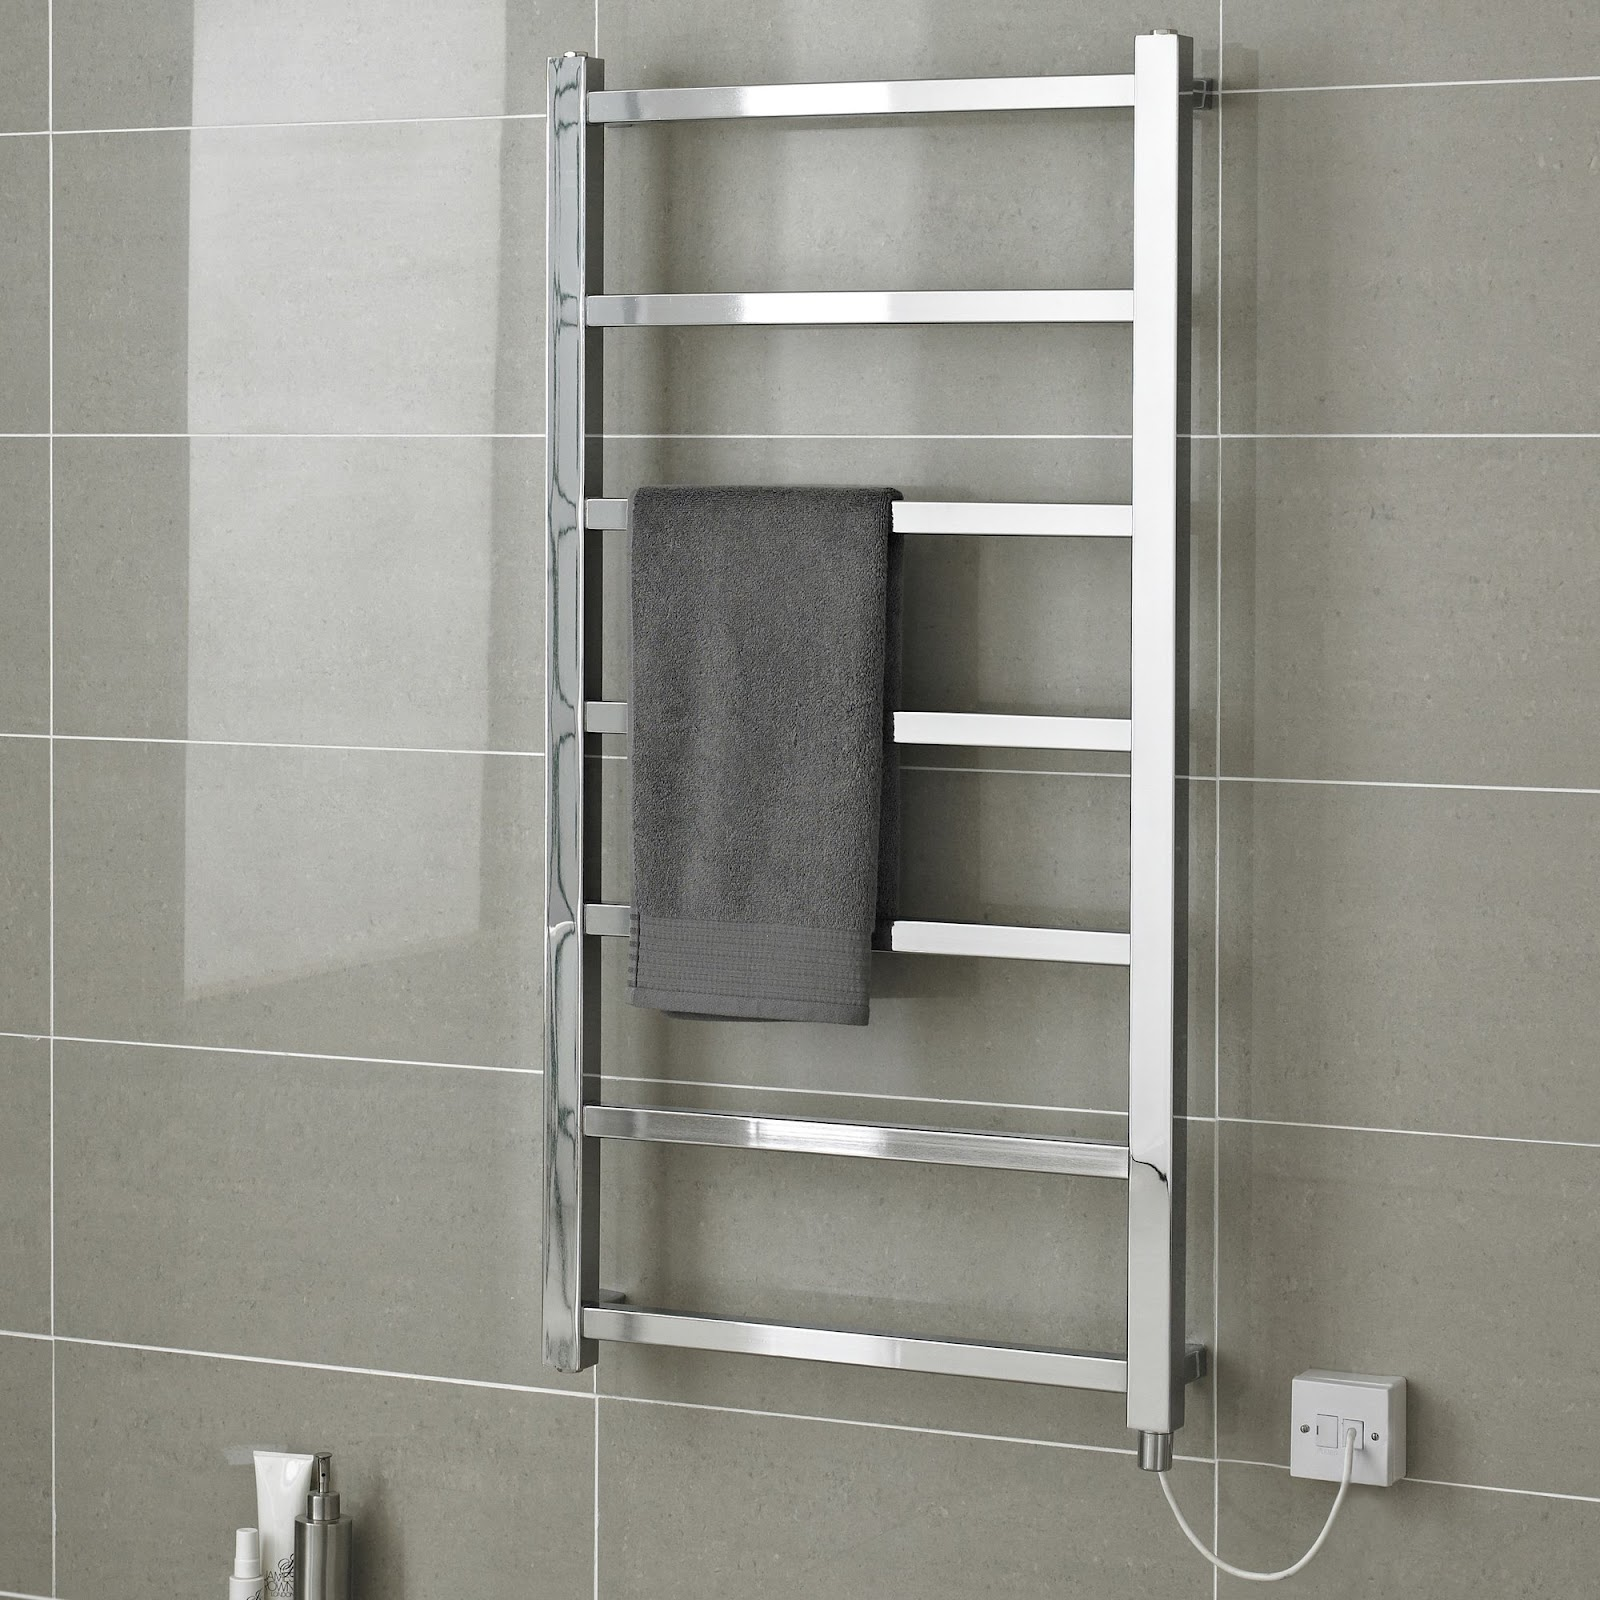 Eton+Wall+Mount+Electric+Heated+Towel+Rail.jpg